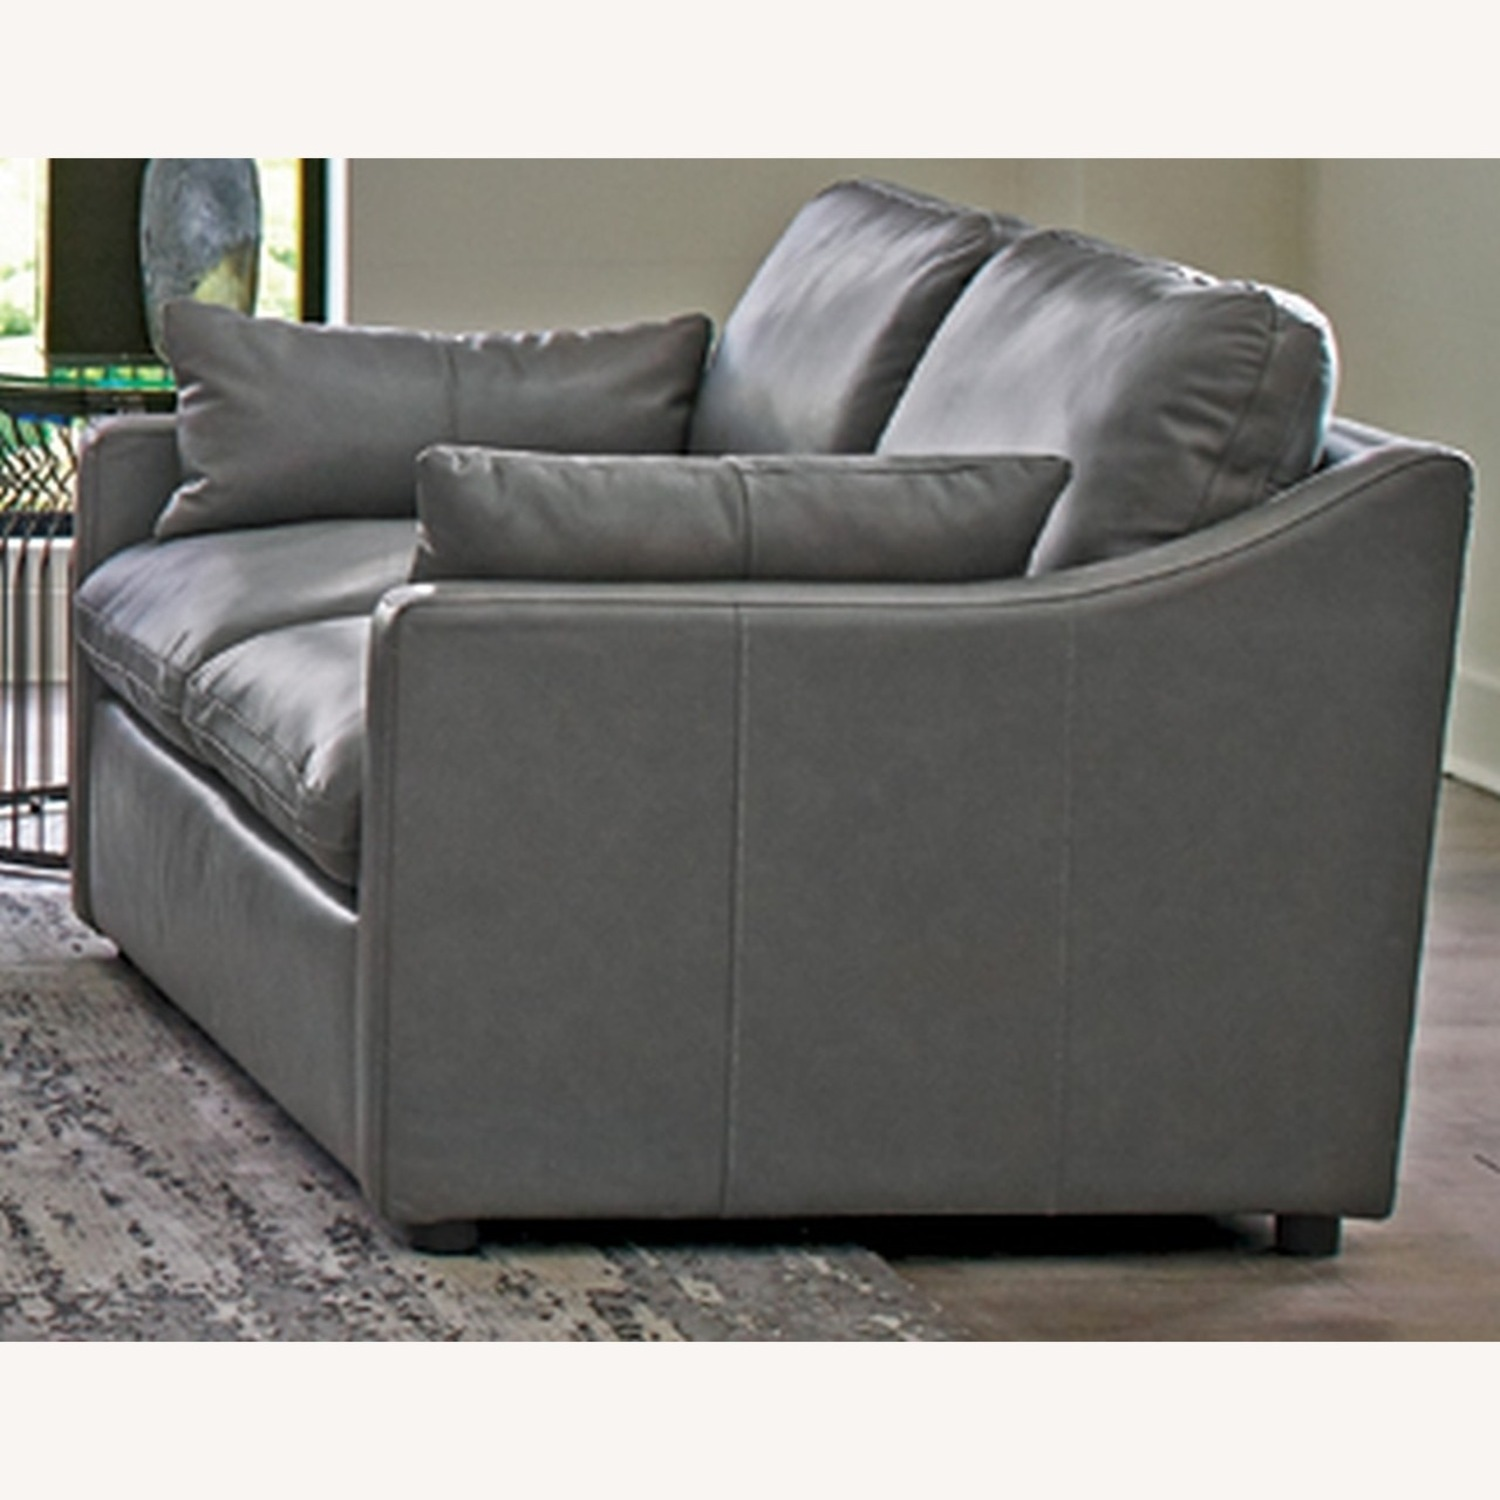 Loveseat In Grey Leatherette Upholstery - image-1